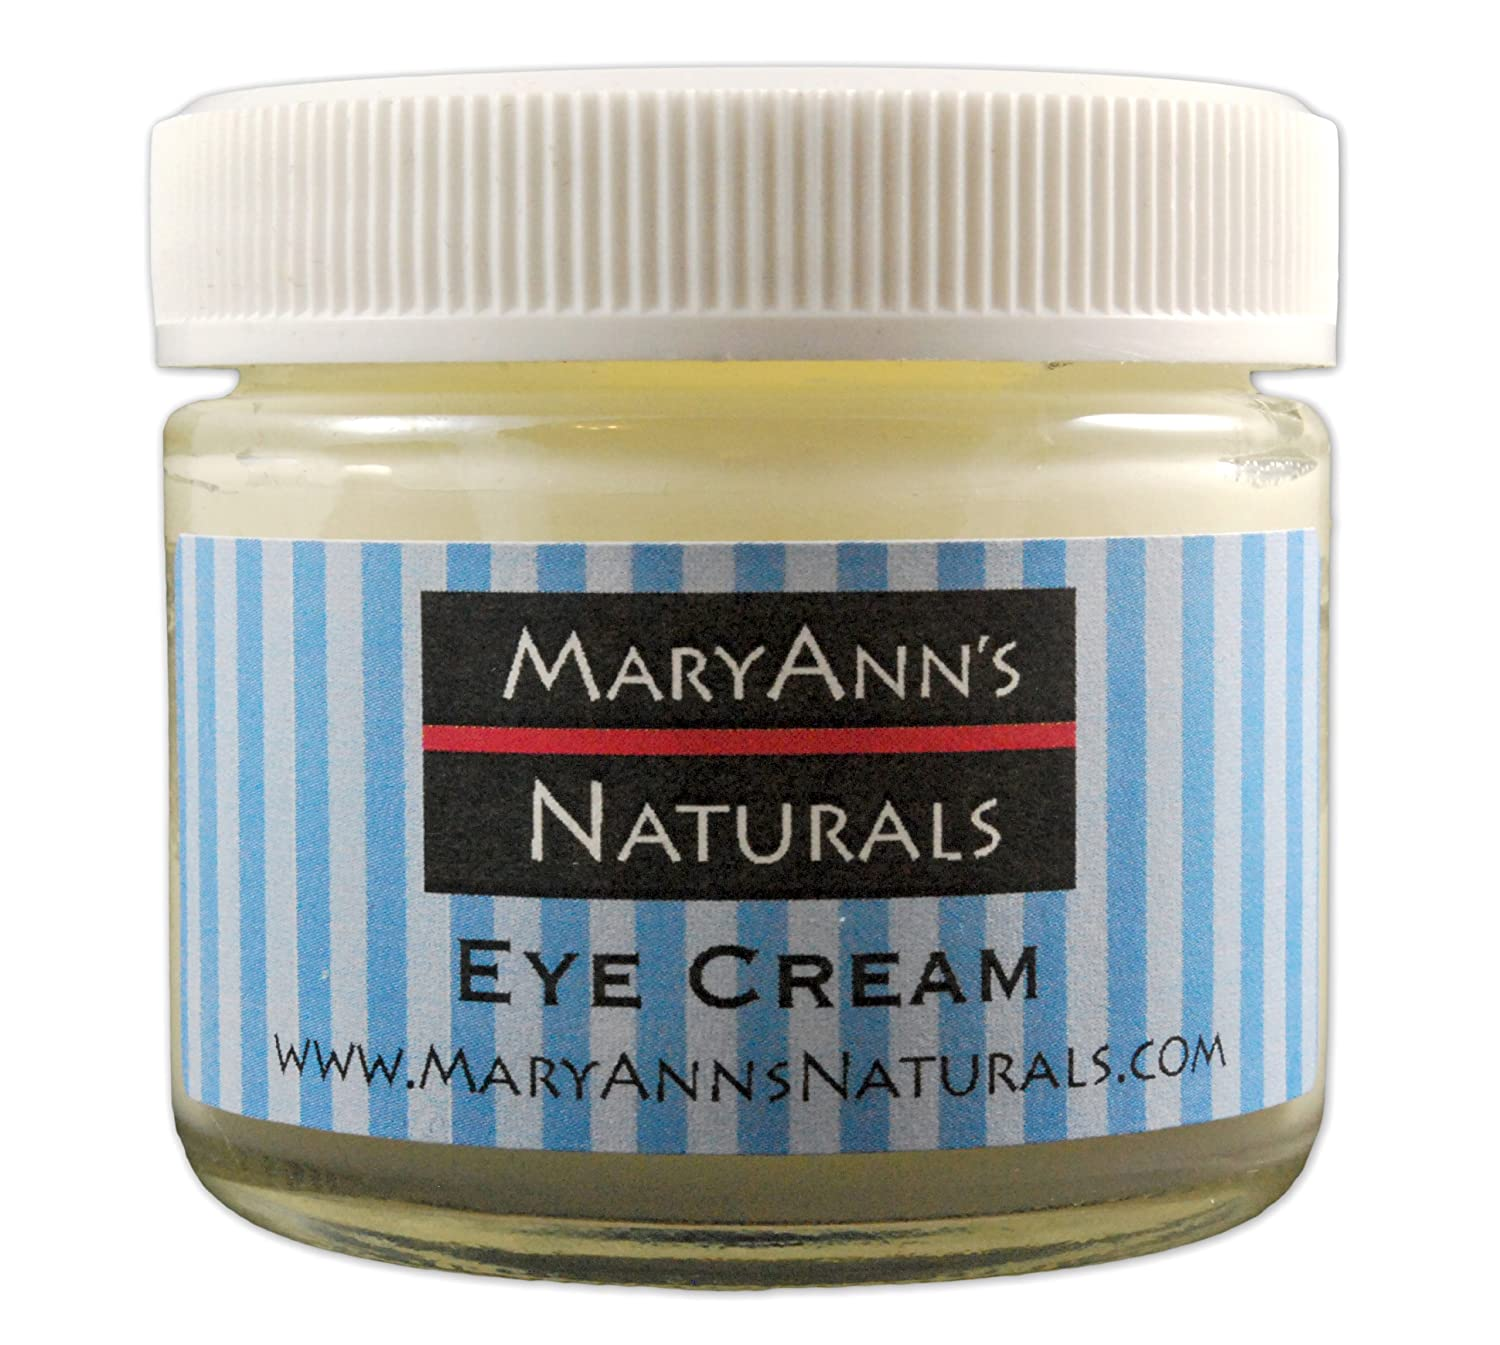 Mary Ann's Naturals Organic Handcrafted Eye Cream - 1 oz.